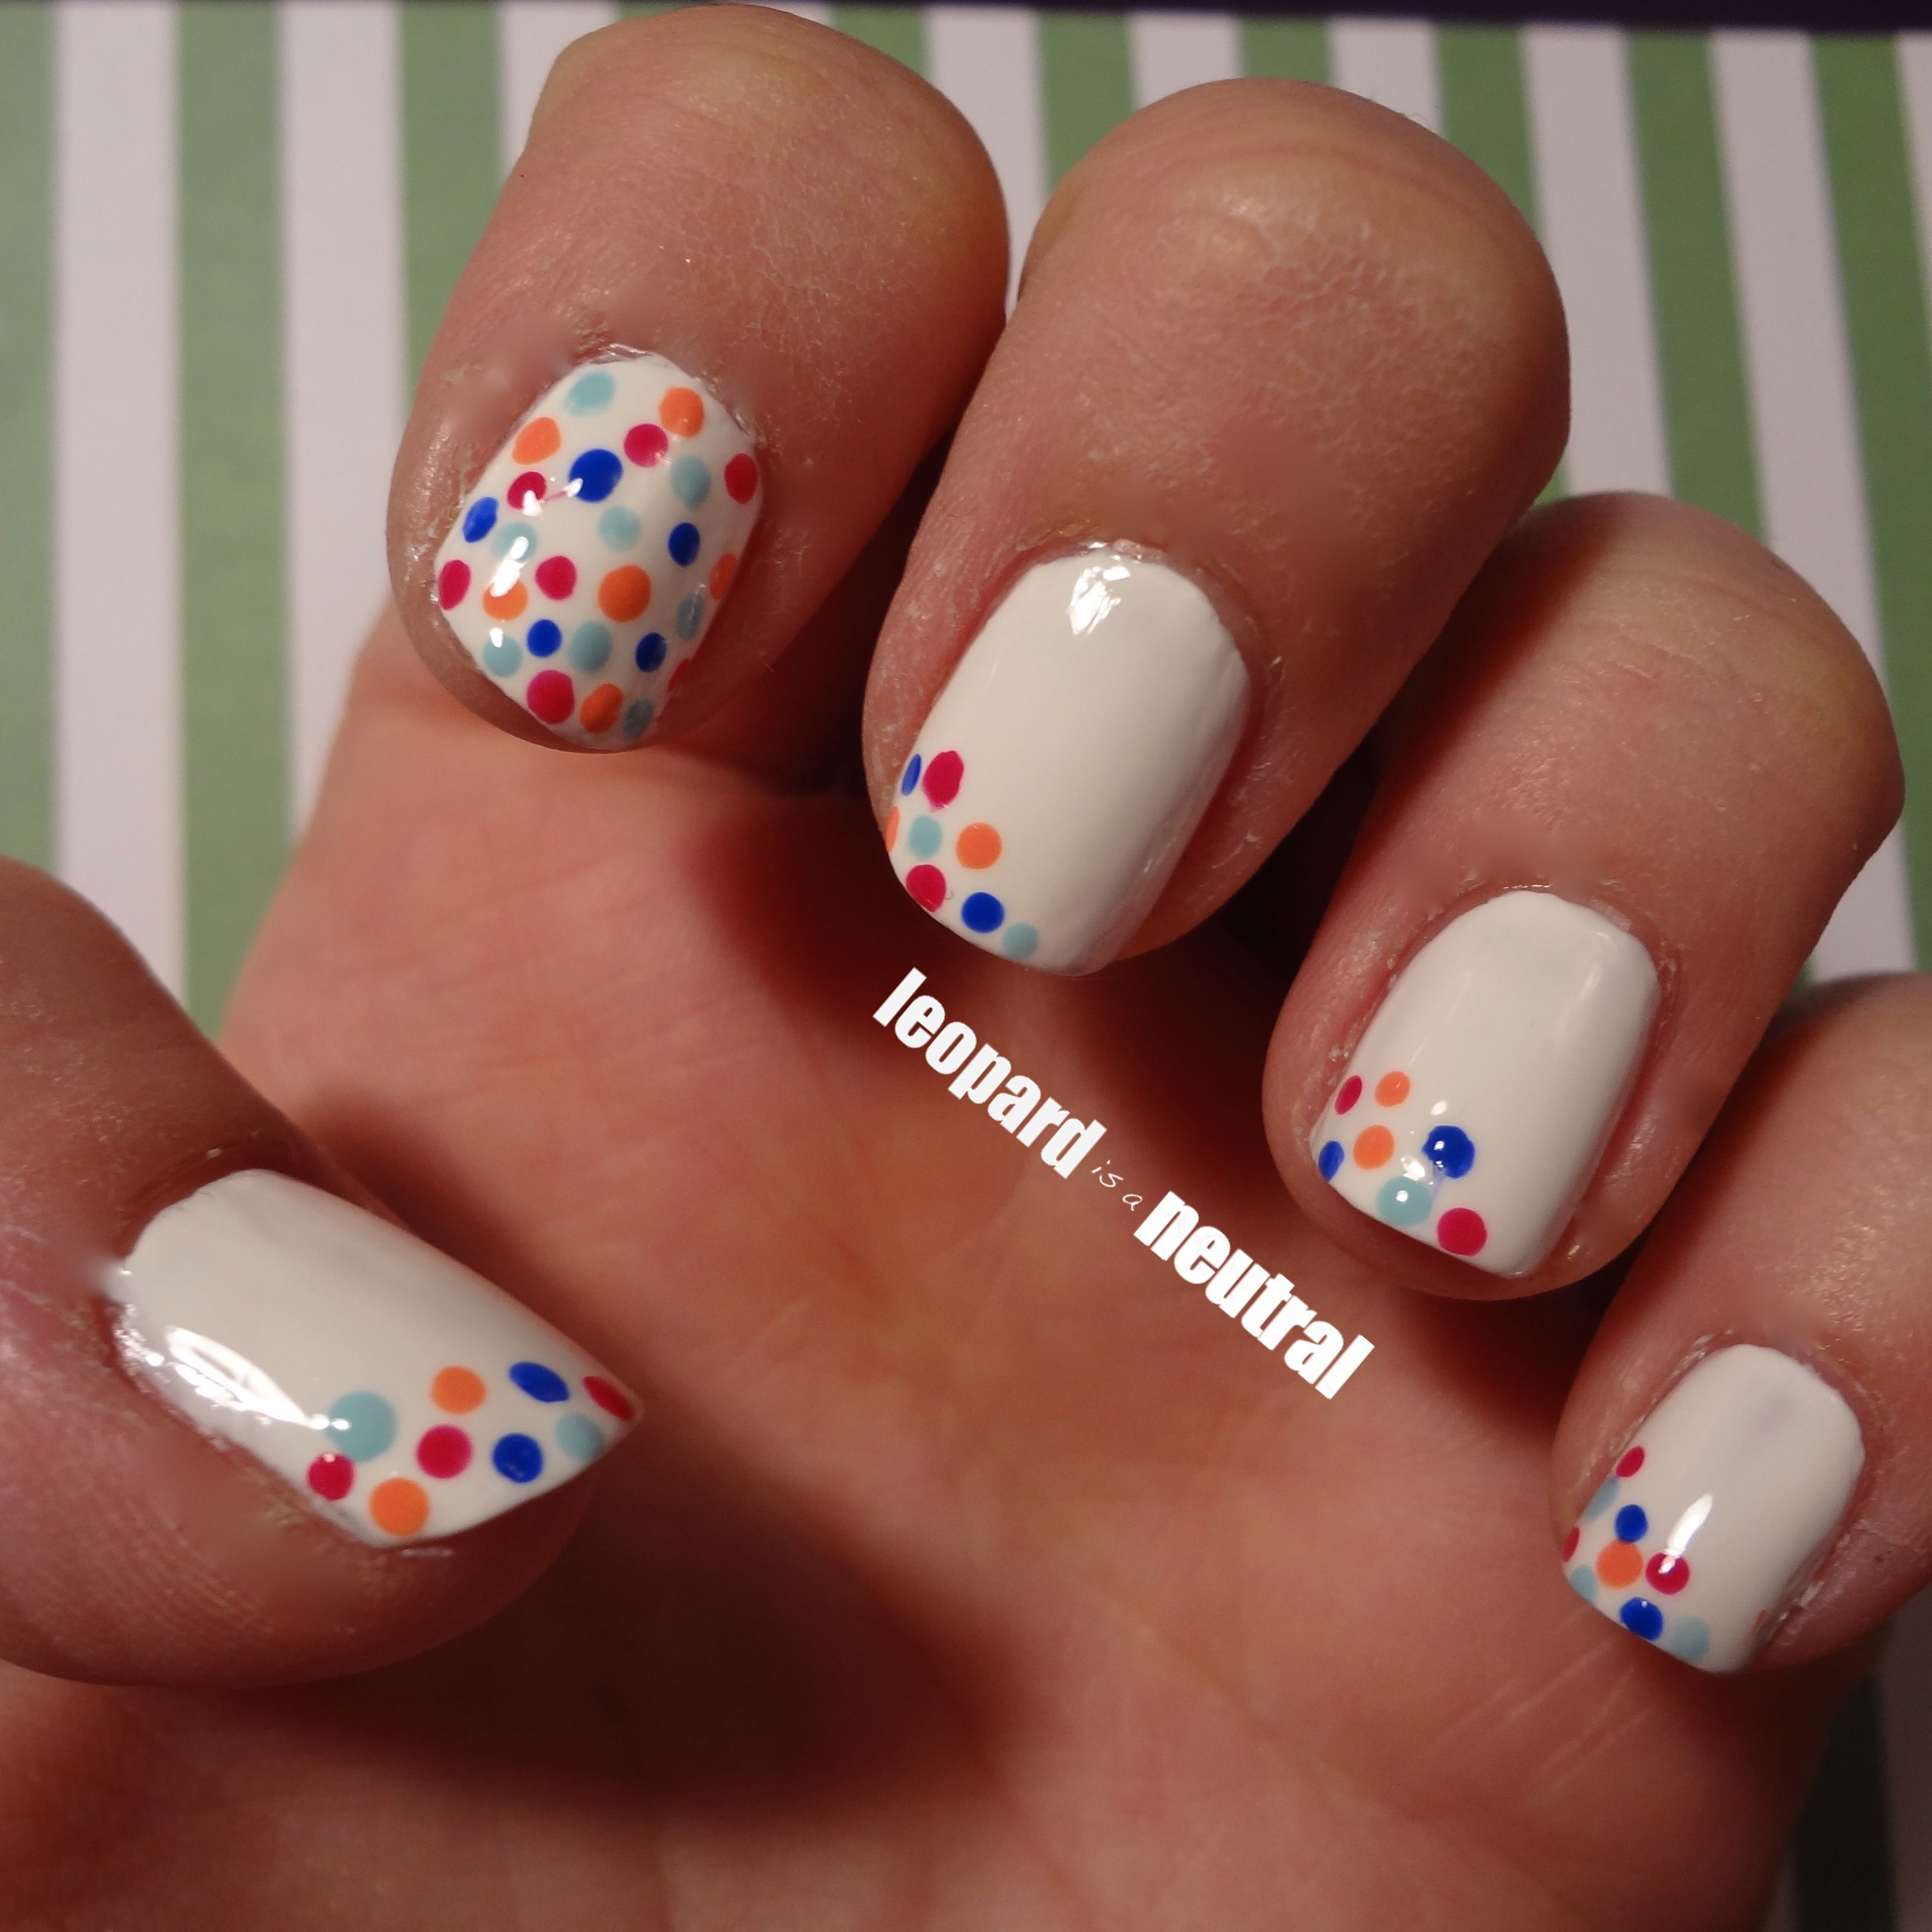 Pin By Sparkly Soda On Little Girls Nail Art Nail Art Diy Spring Nail Art Diy Nails Easy